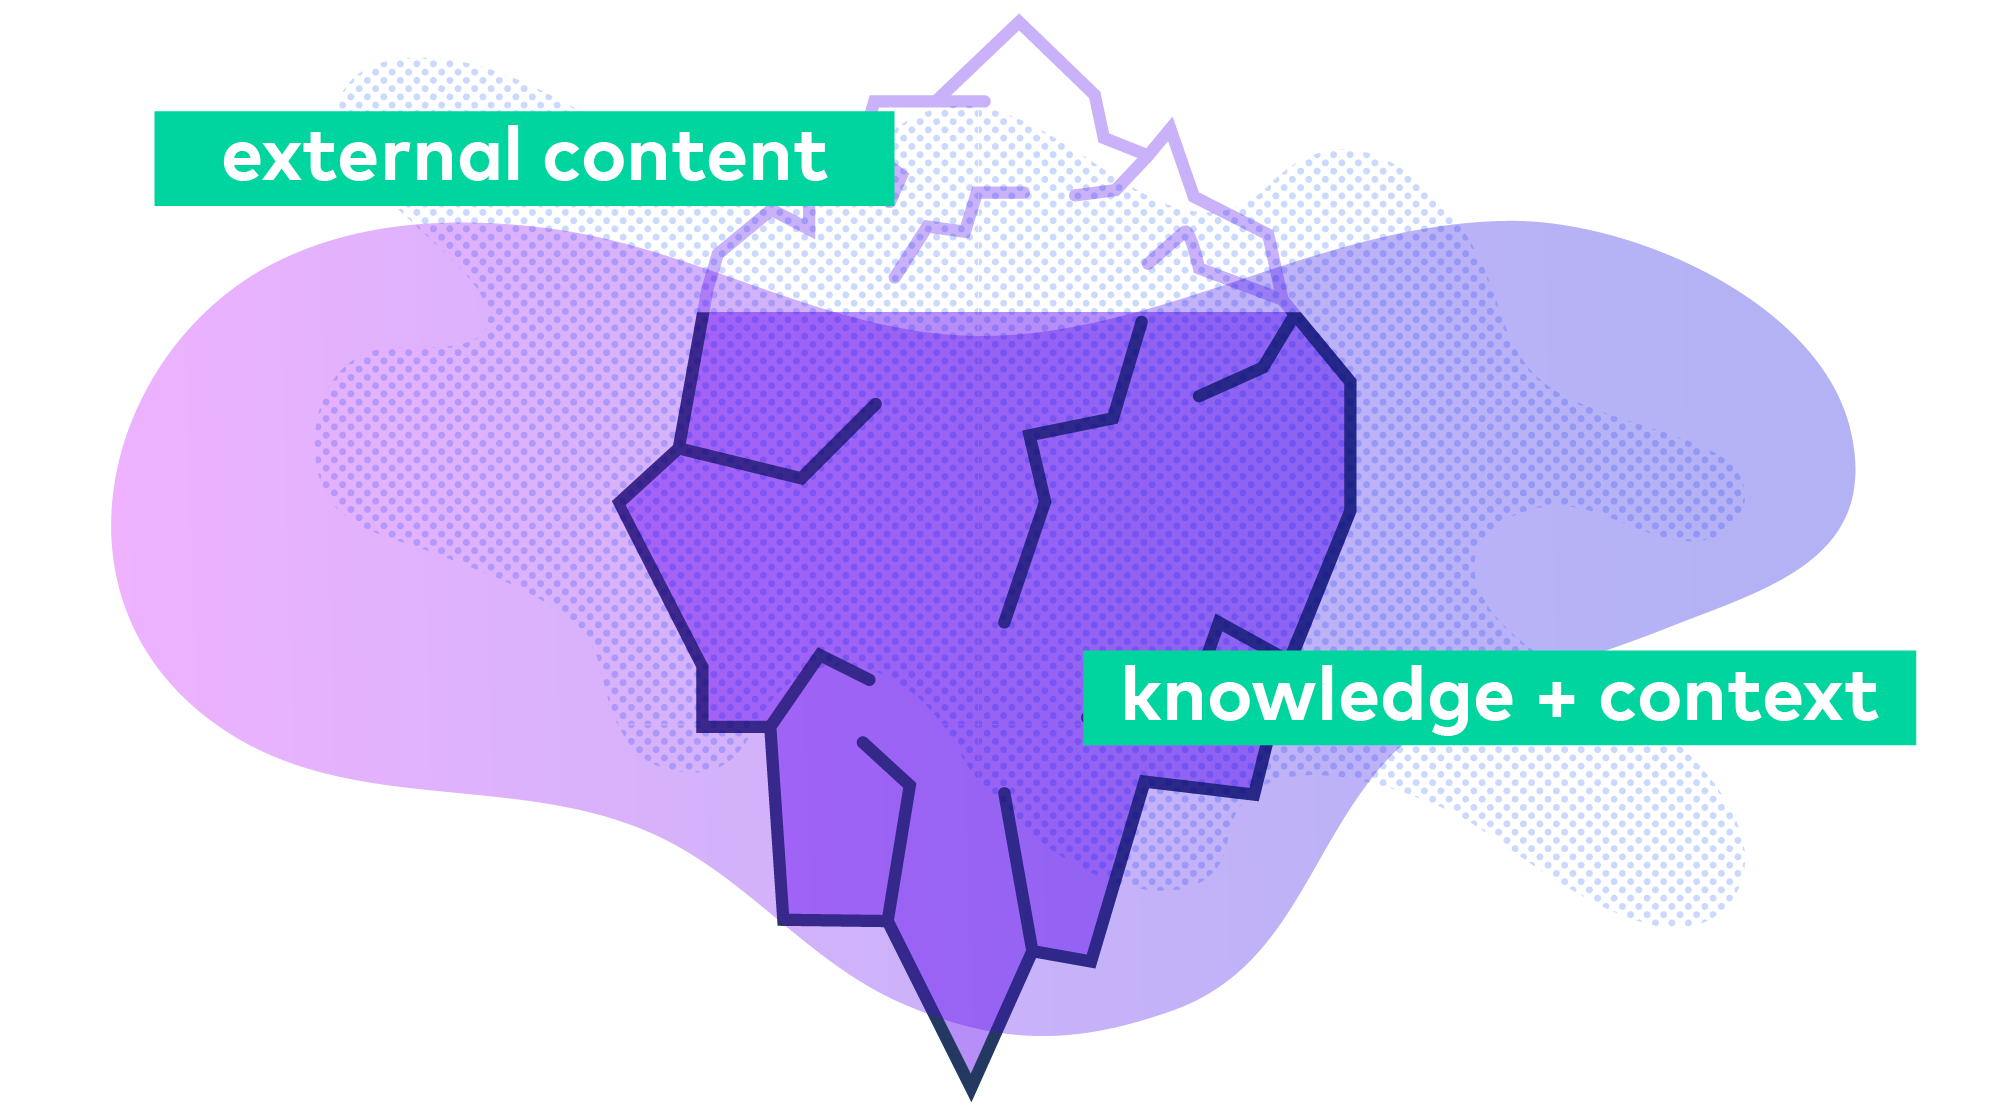 Enterprise knowledge is an iceberg